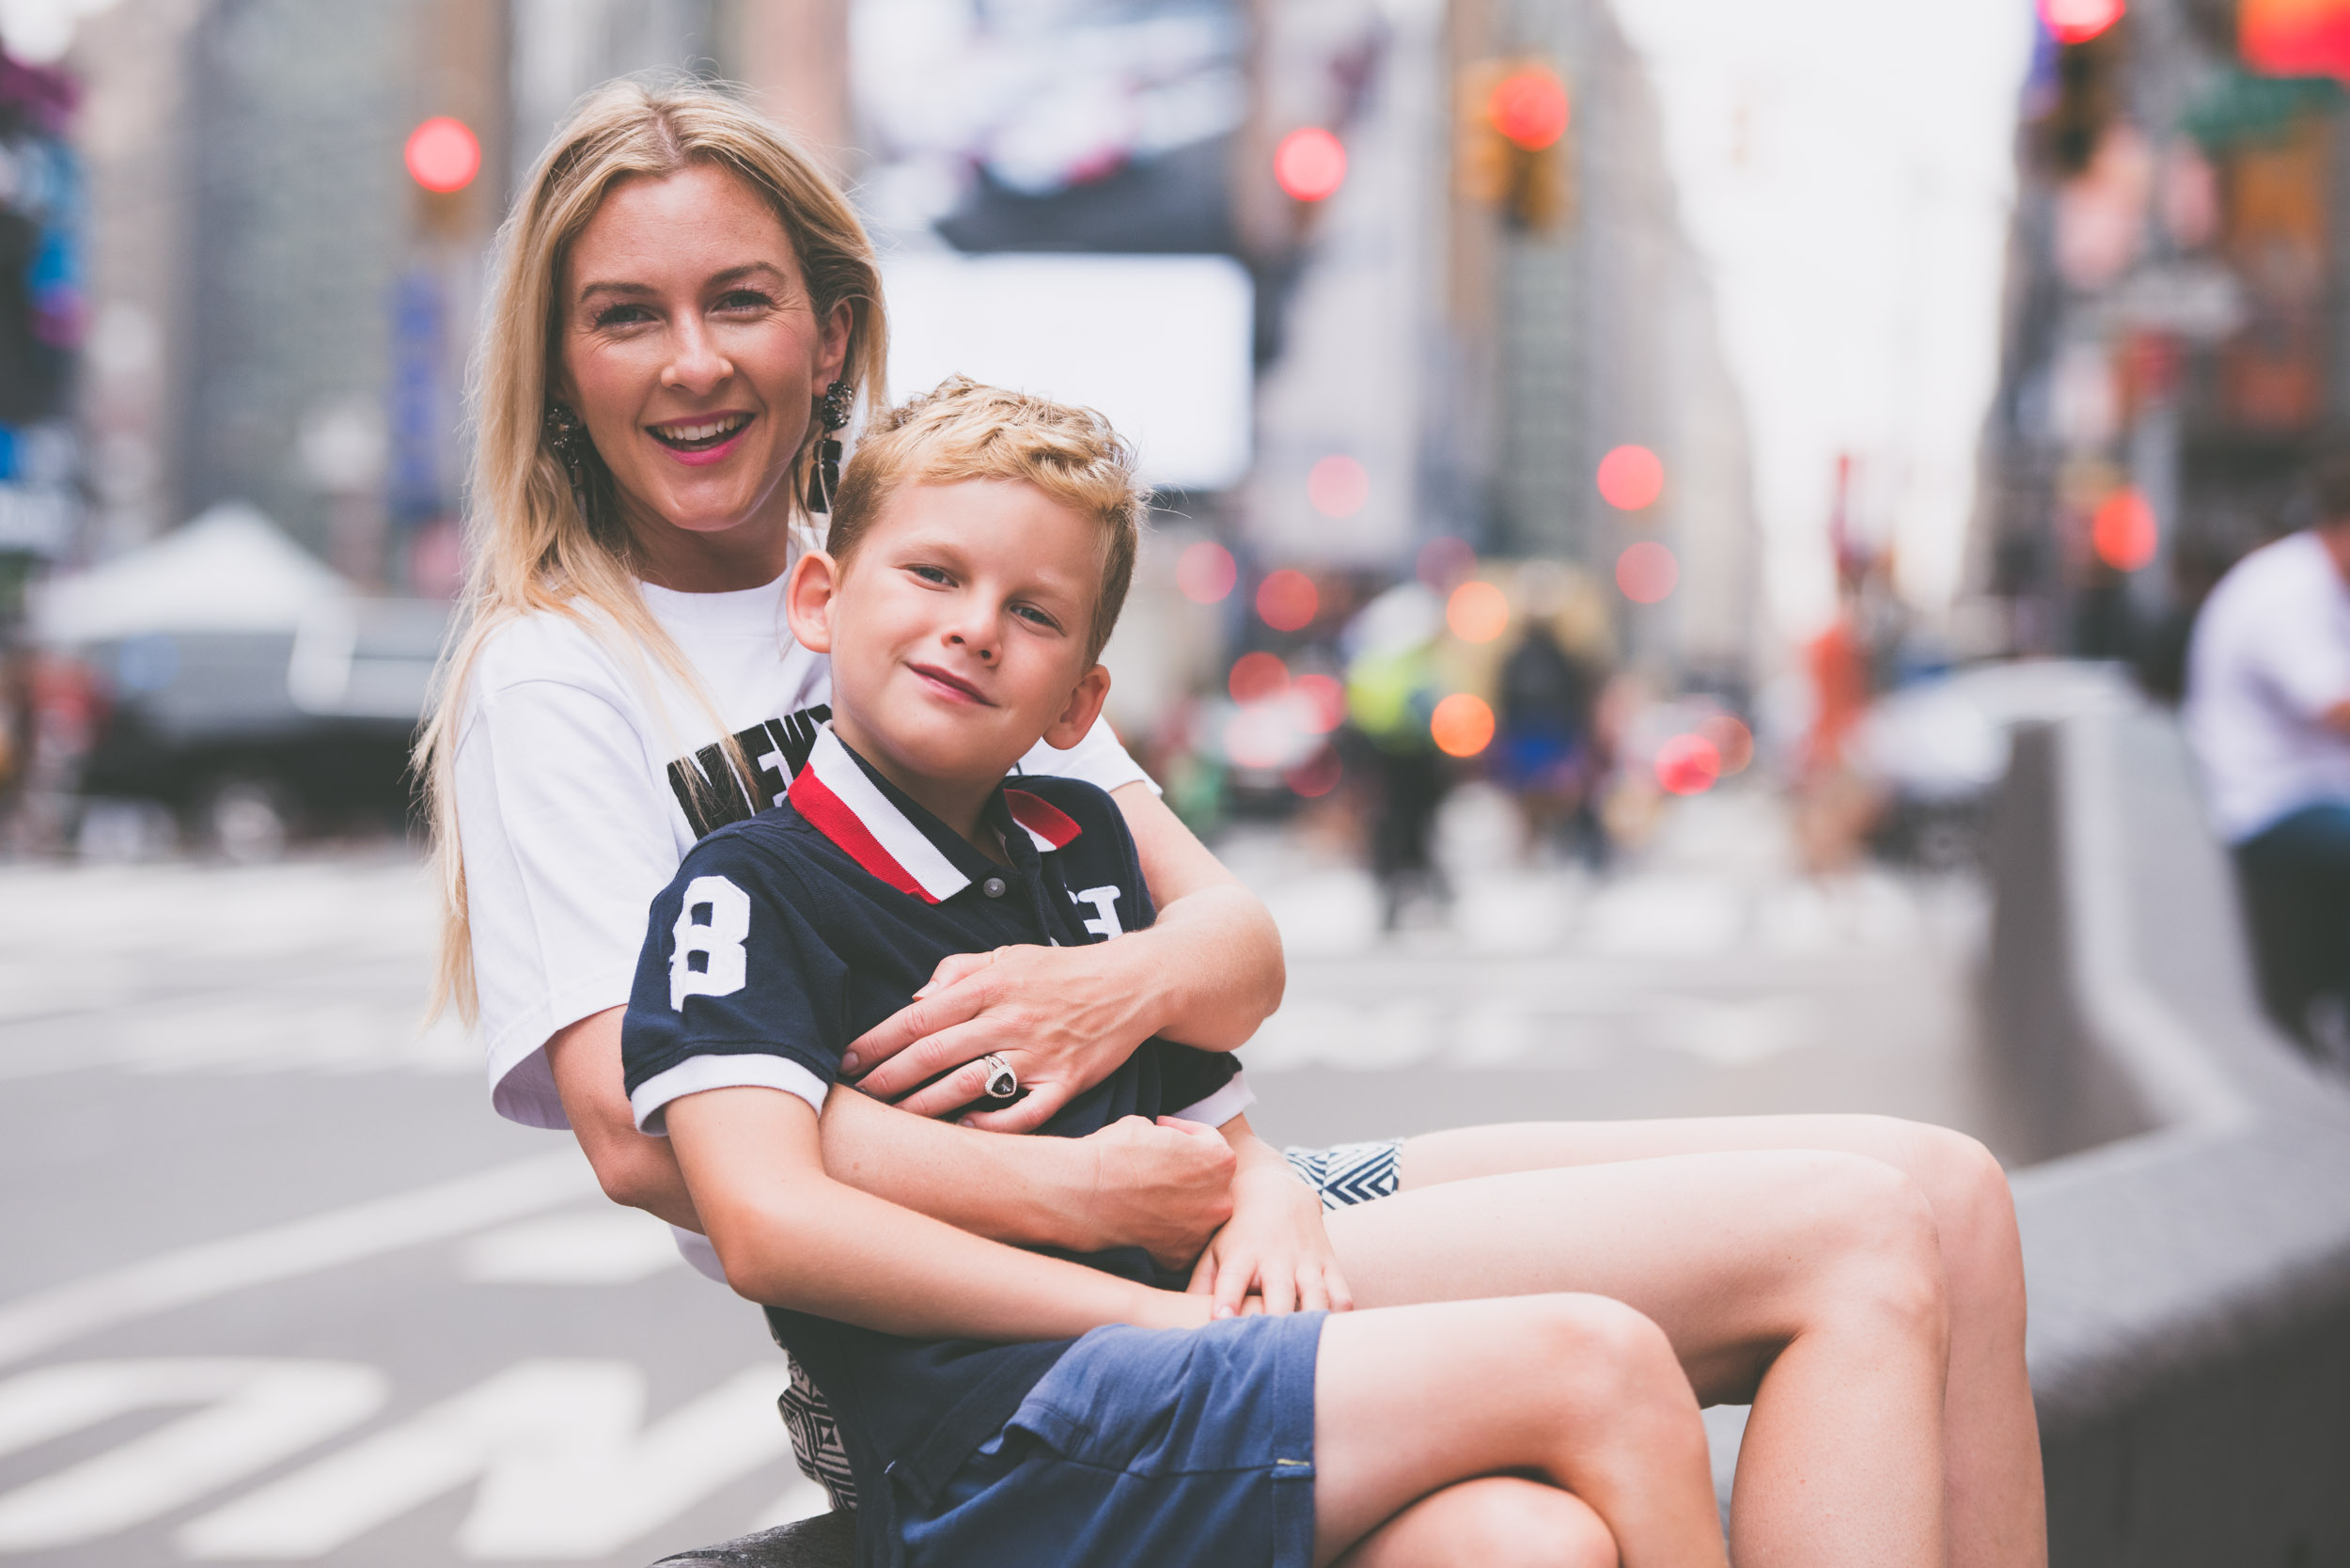 Mom and son in Times Square - Family - Photo credit Nicola Bailey.jpg